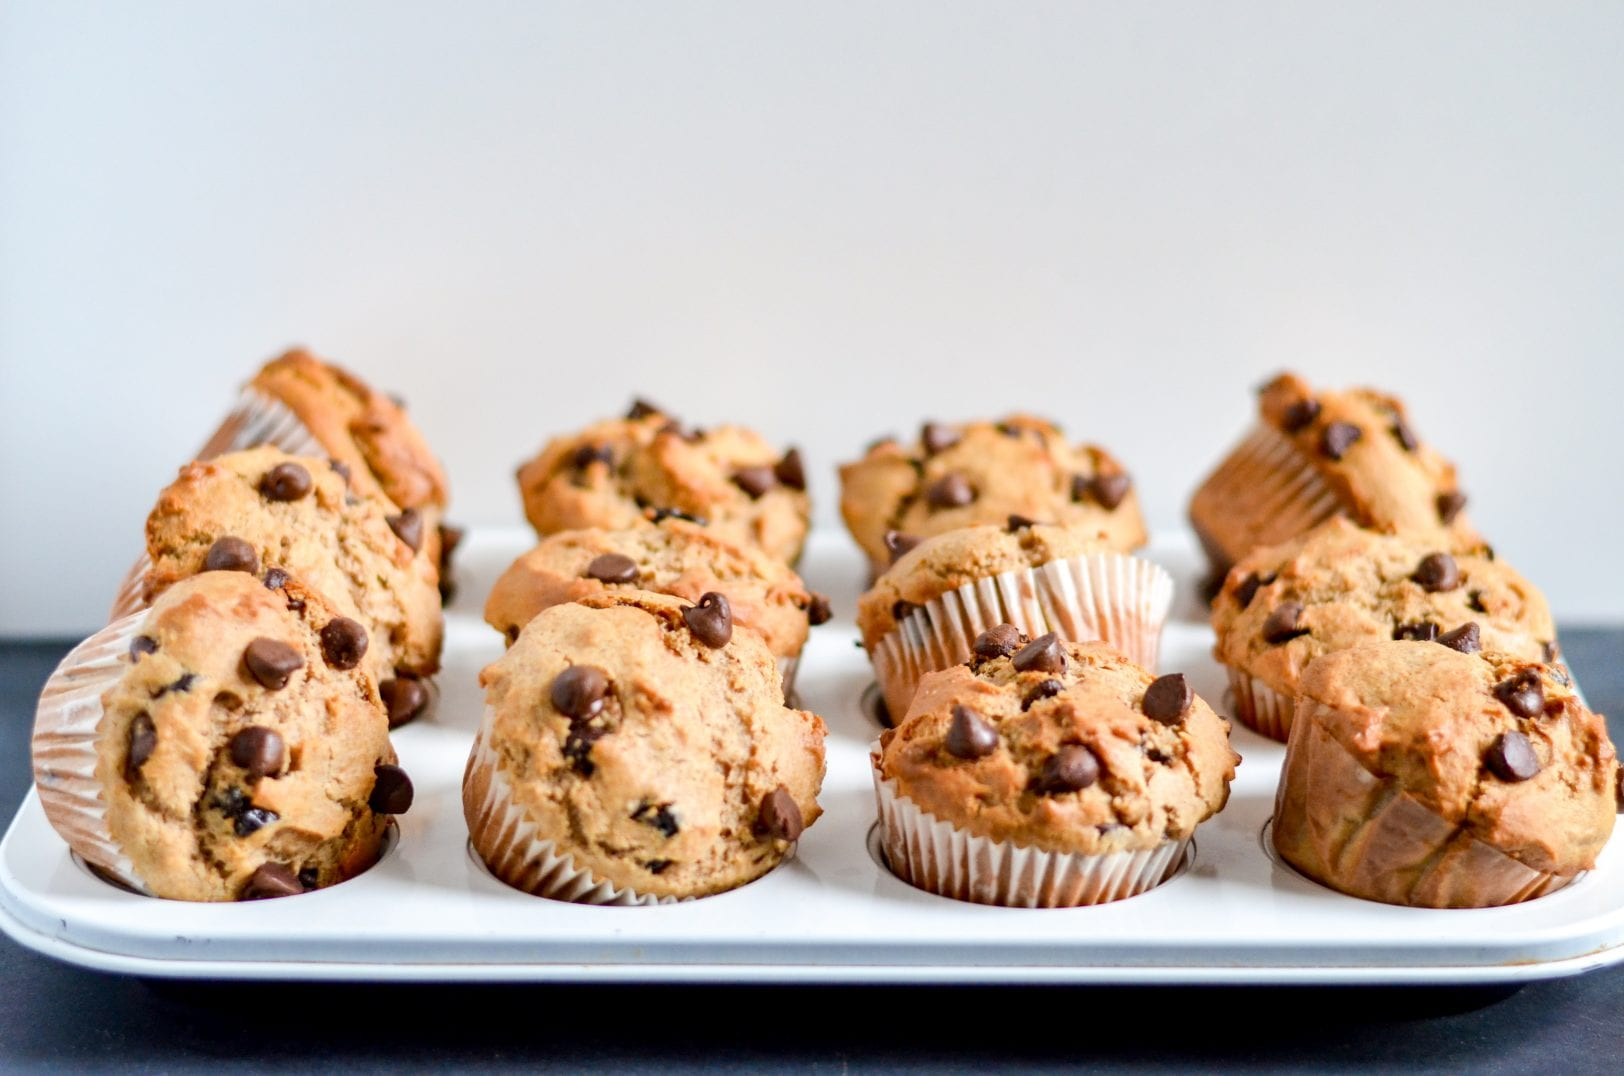 baked muffins in a baking dish